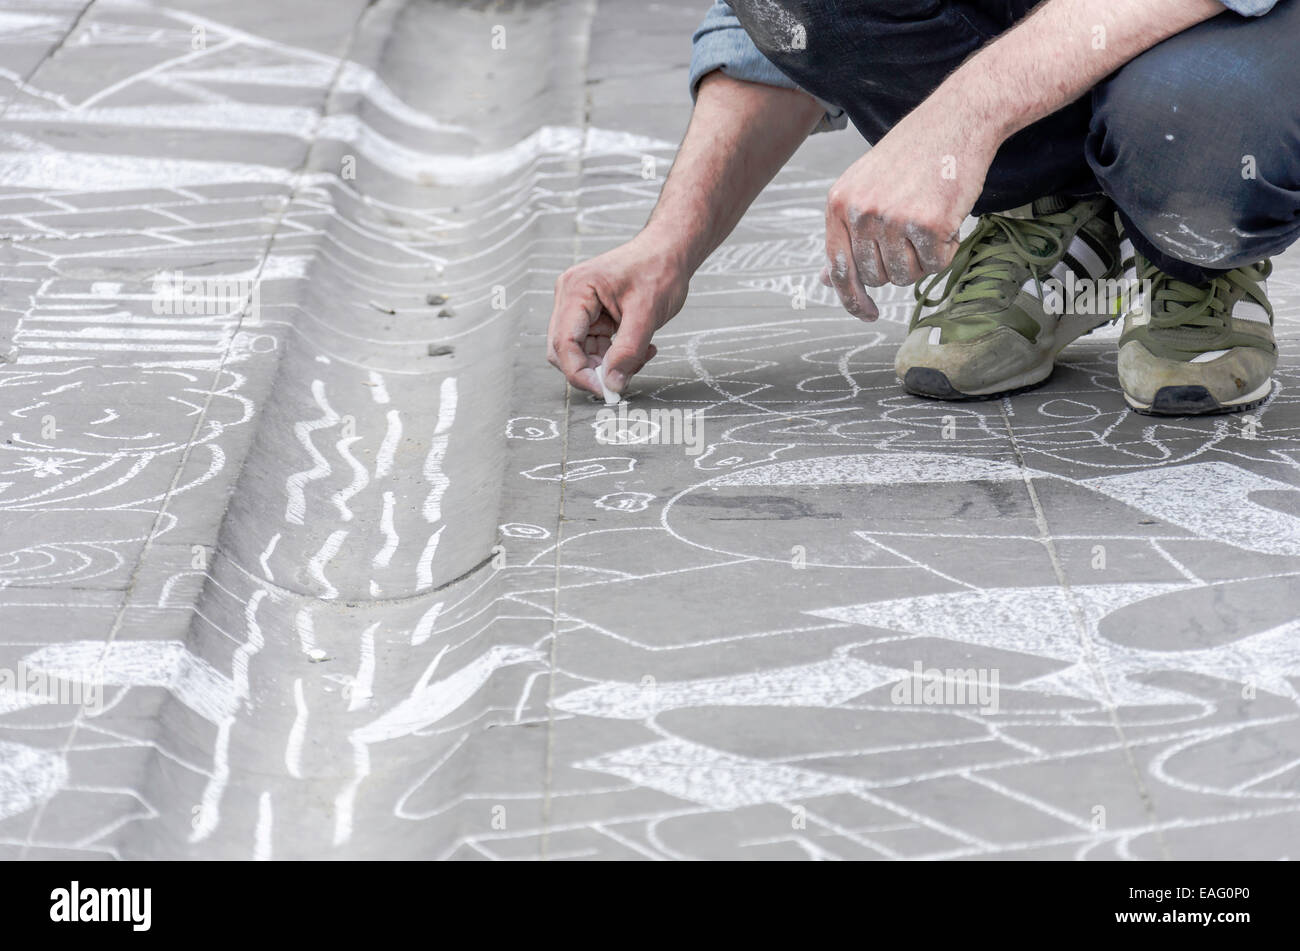 17 APRIL; 2014 KLUB 7 chalk session in front of the Galata tower - ISTANBUL - Stock Image